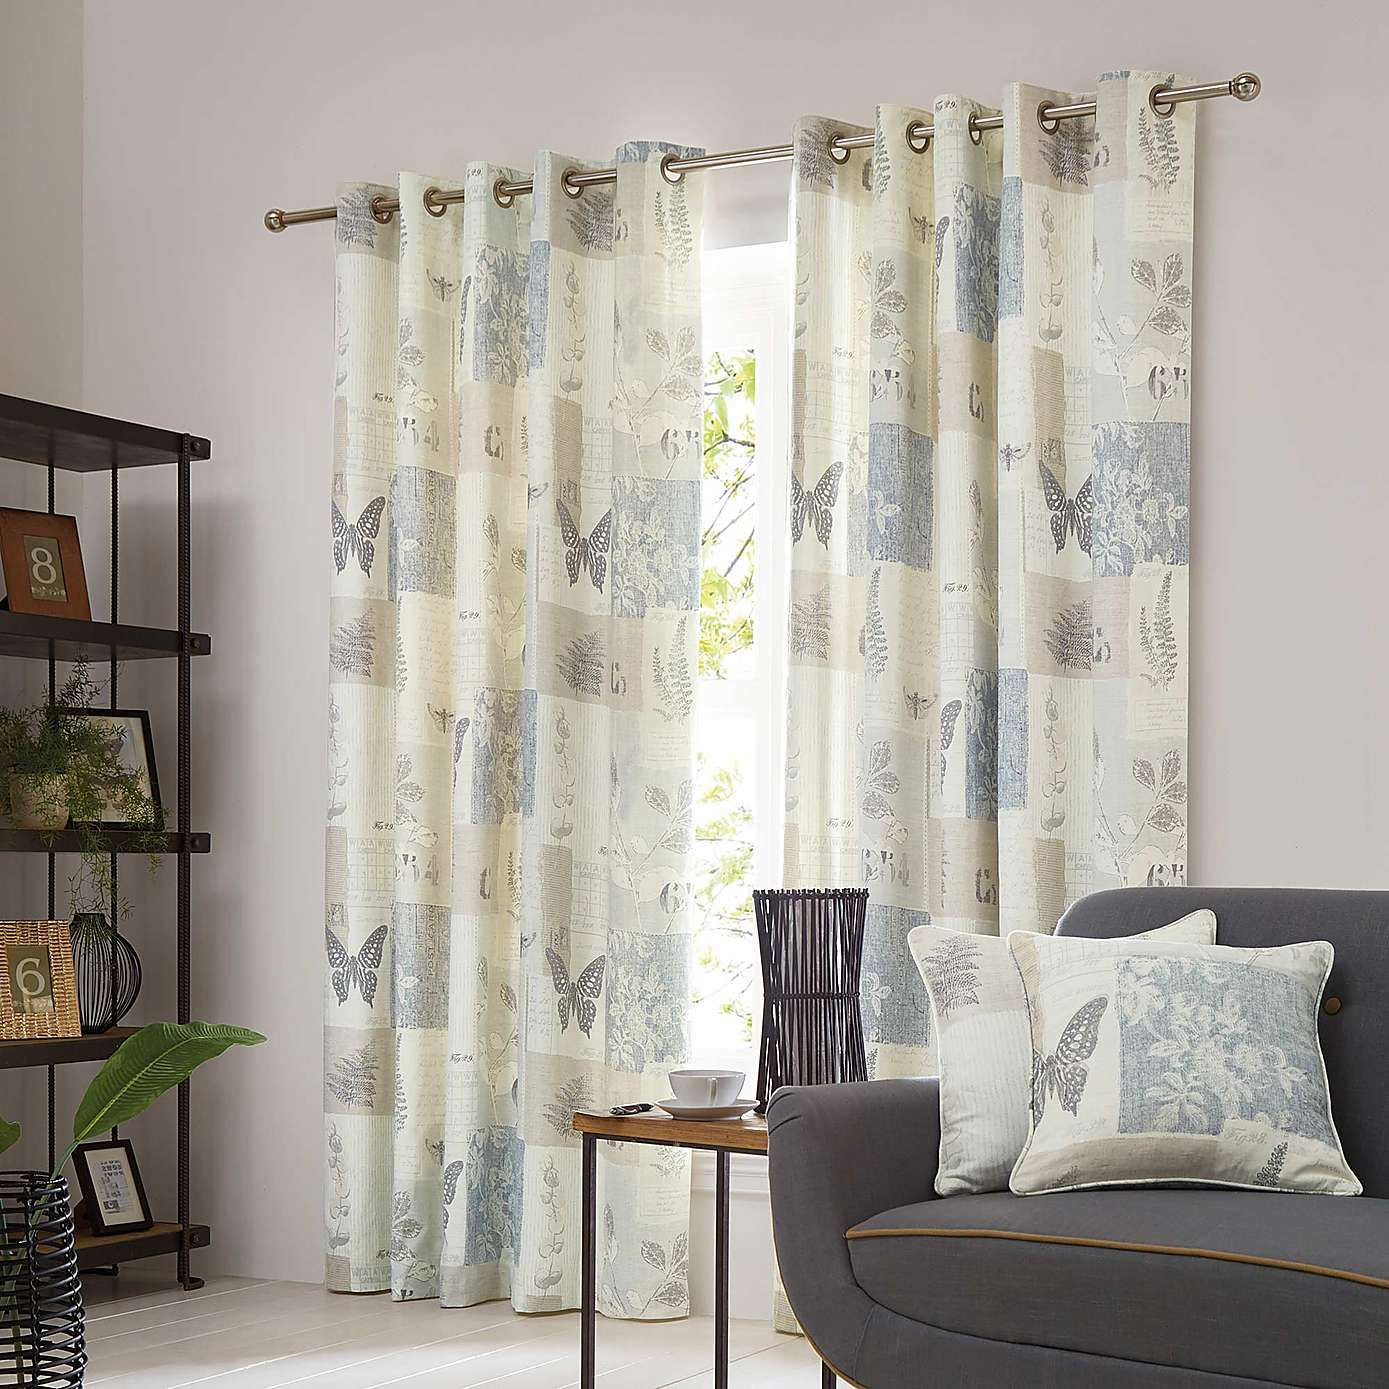 Rustic kitchen window treatments  botanist natural lined eyelet curtains  dunelm  dwd market